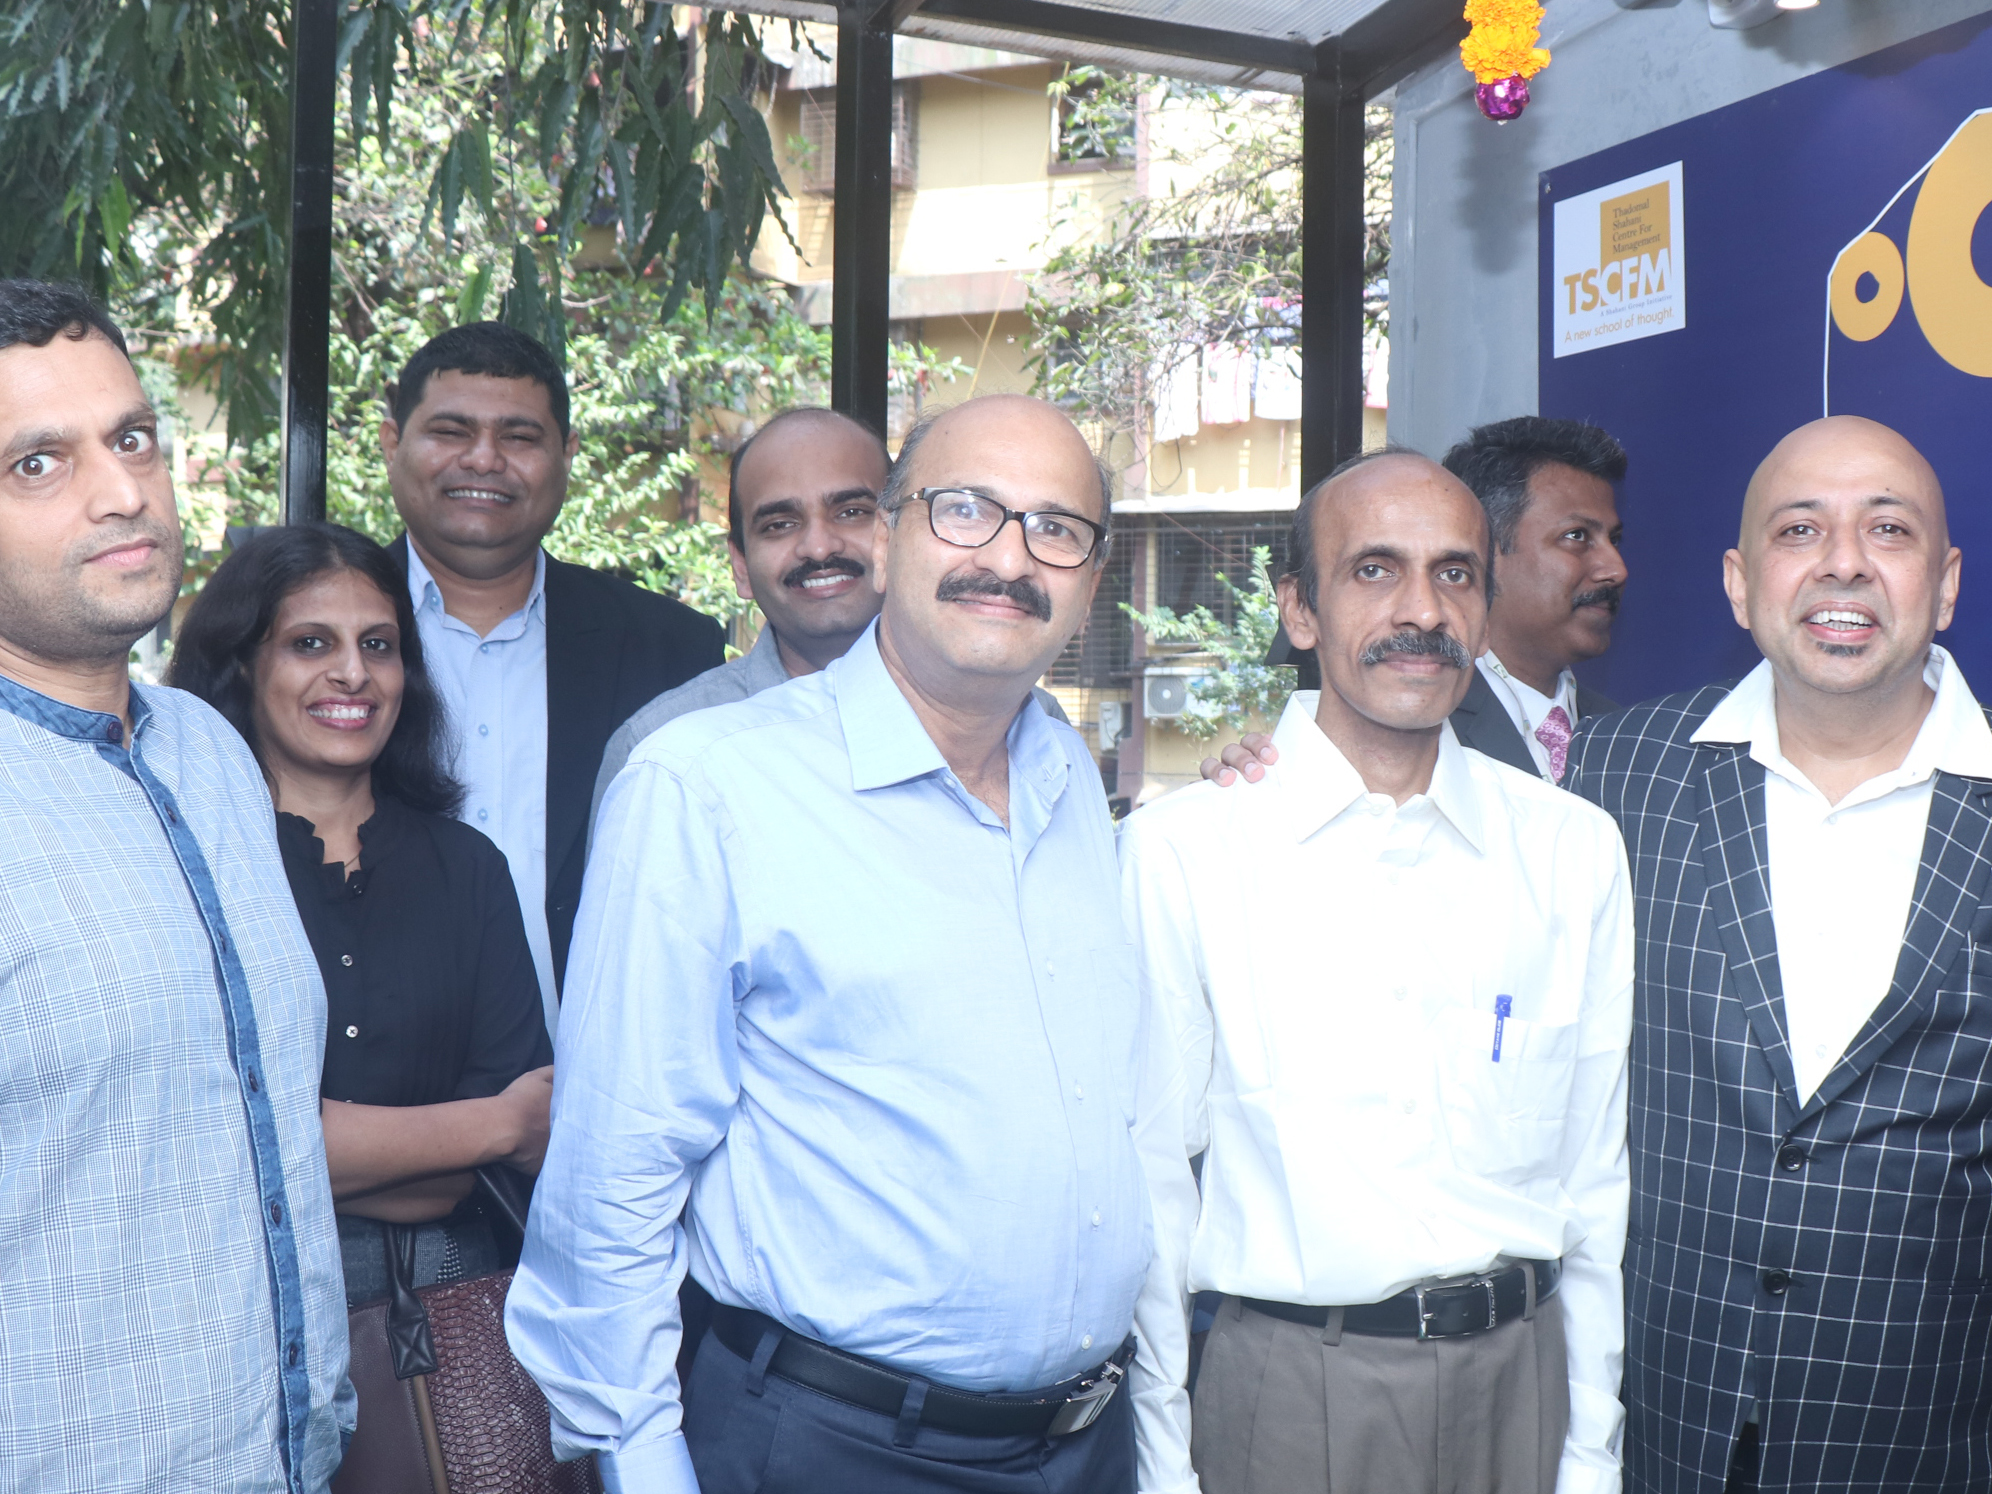 Thadomal Shahani Centre For Management launched its new campus at Mulund